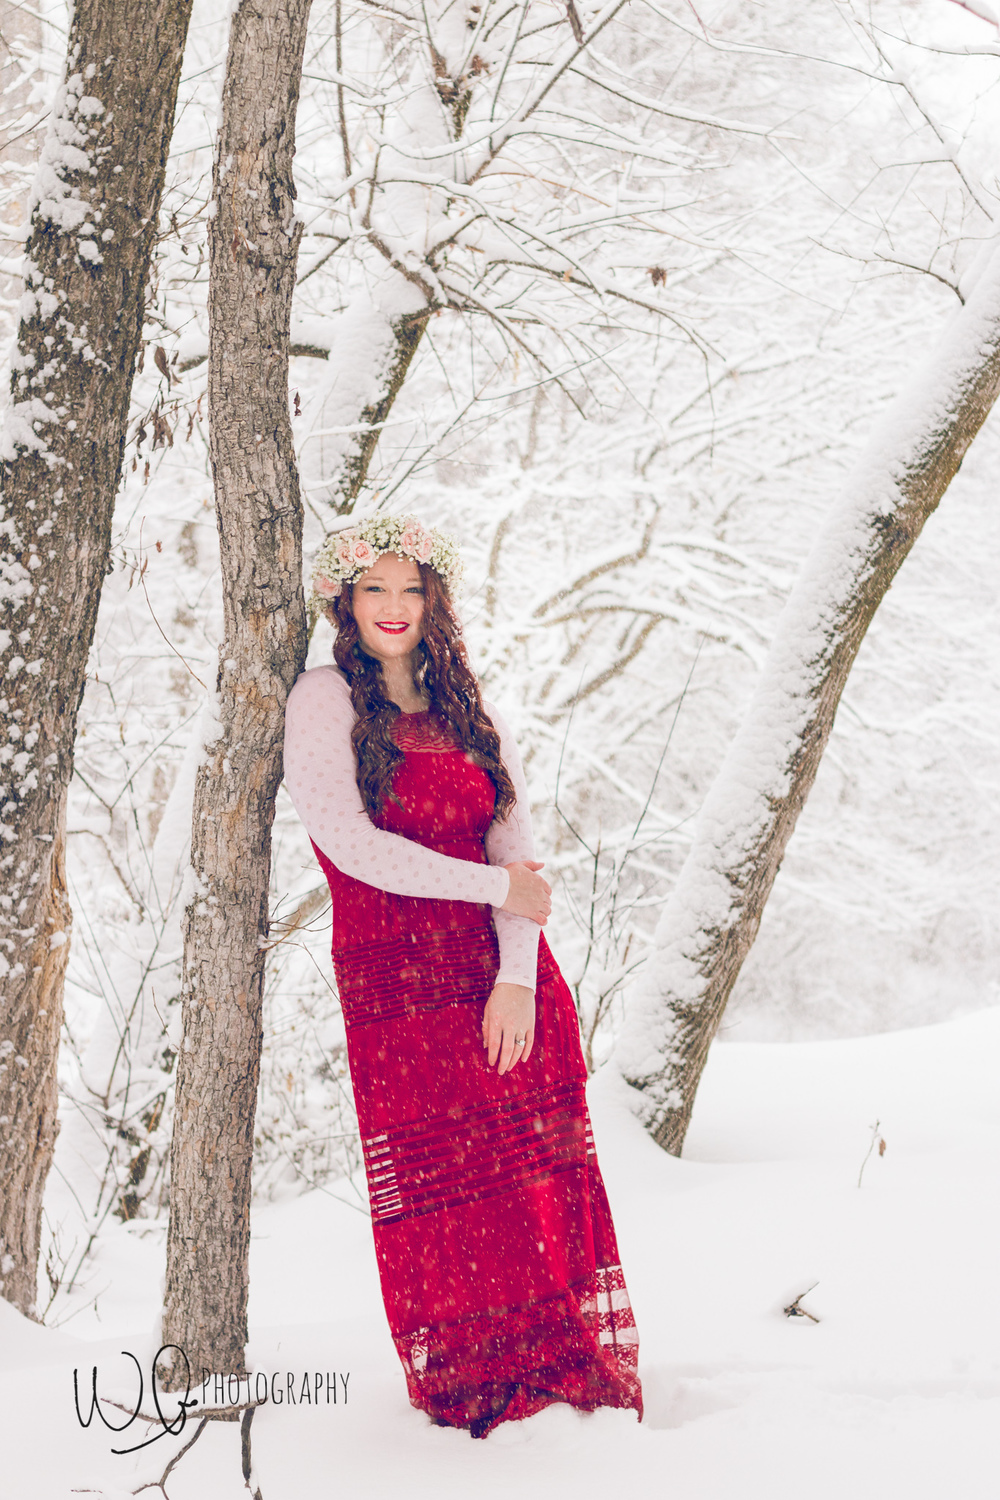 Senior pictures, winter photo shoot